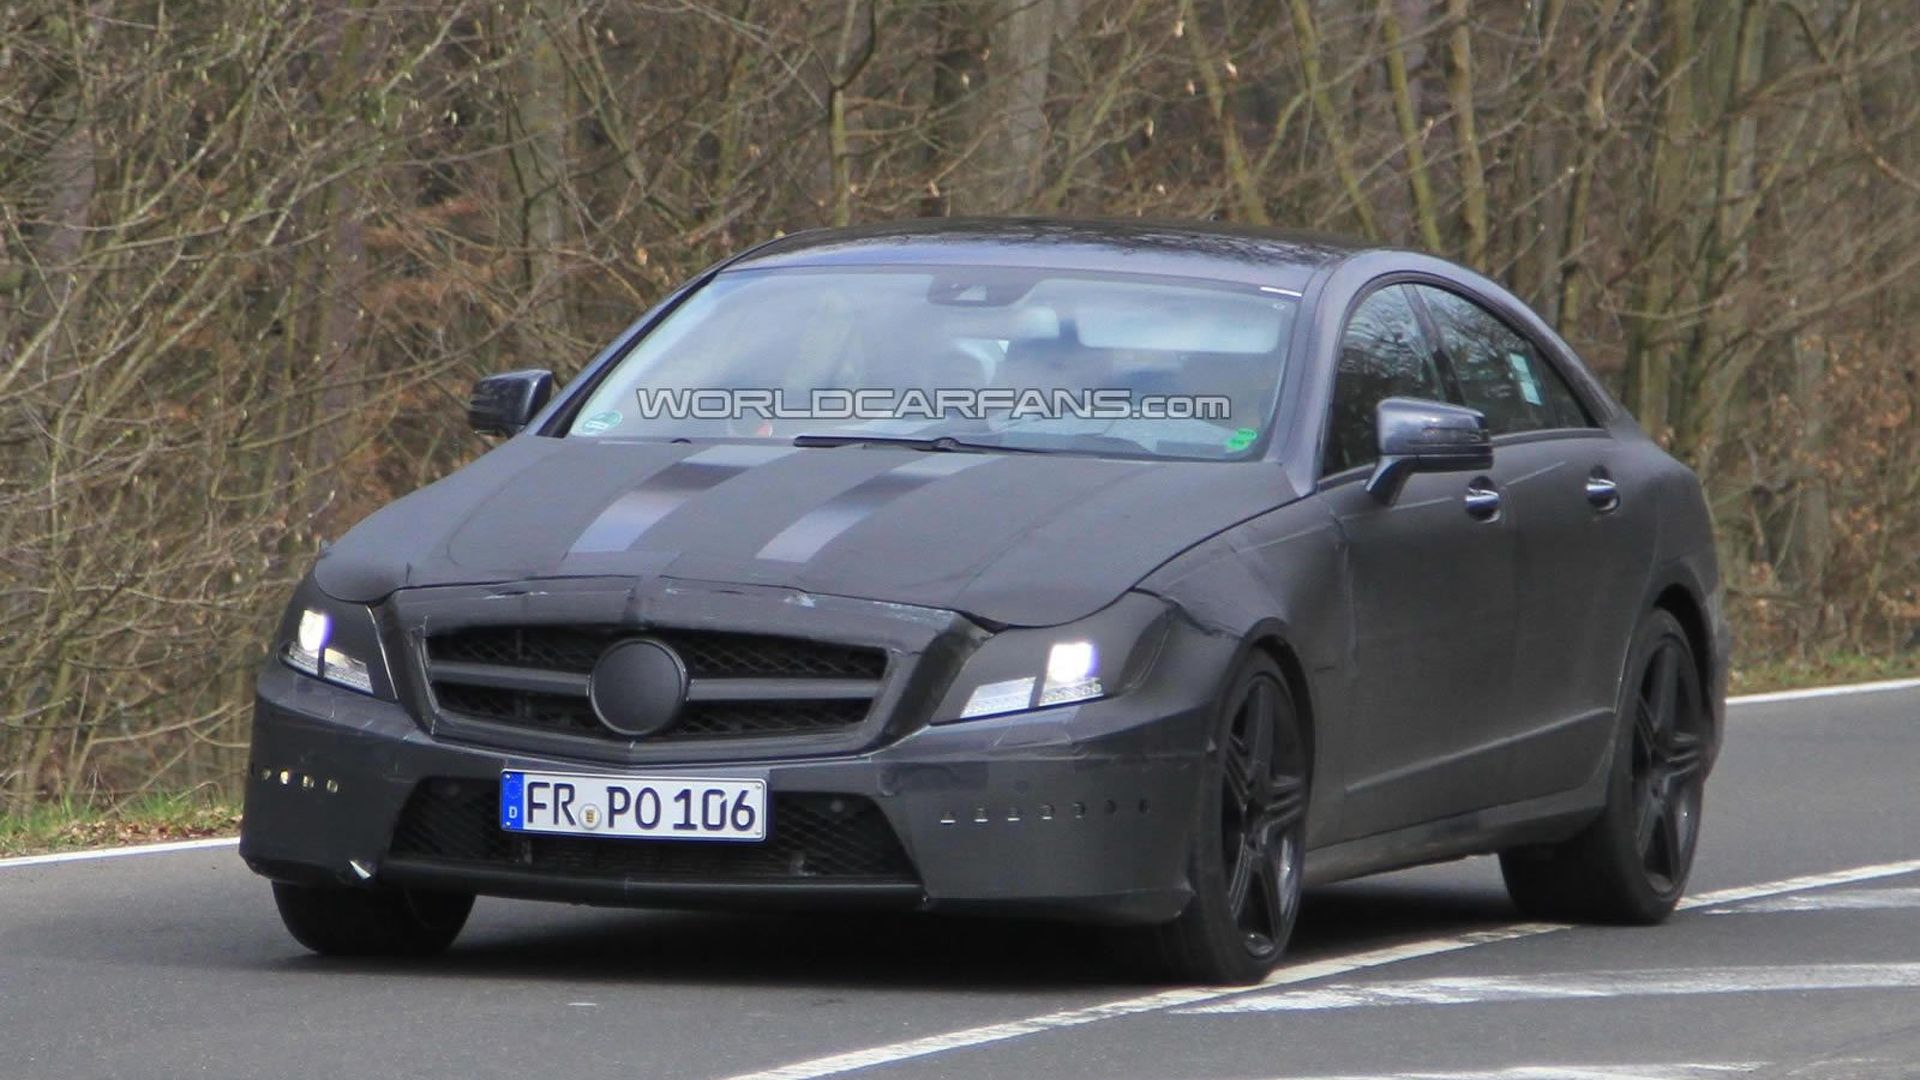 2012 Mercedes CLS 63 AMG will debut in LA - report